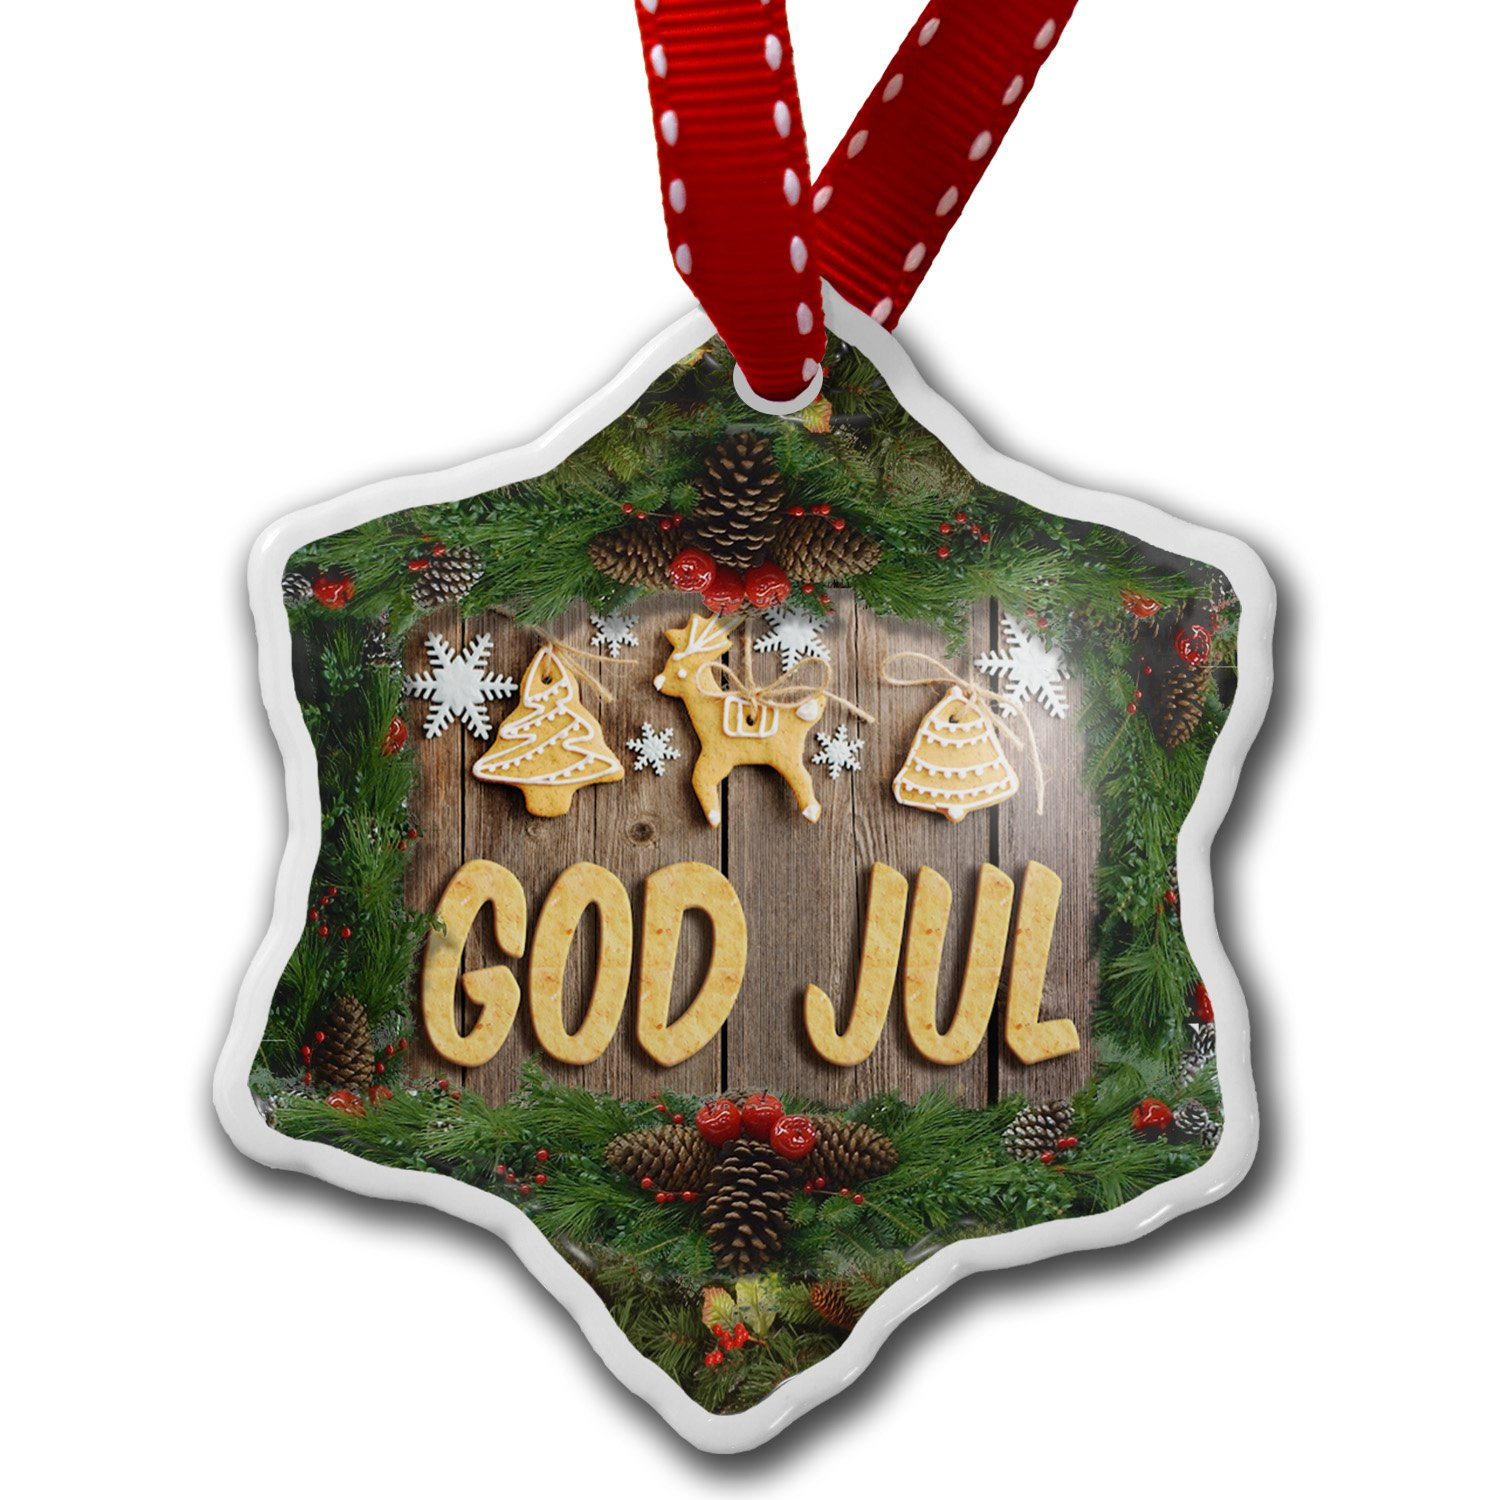 Amazon.com: Christmas Ornament Merry Christmas in Norwegian from ...